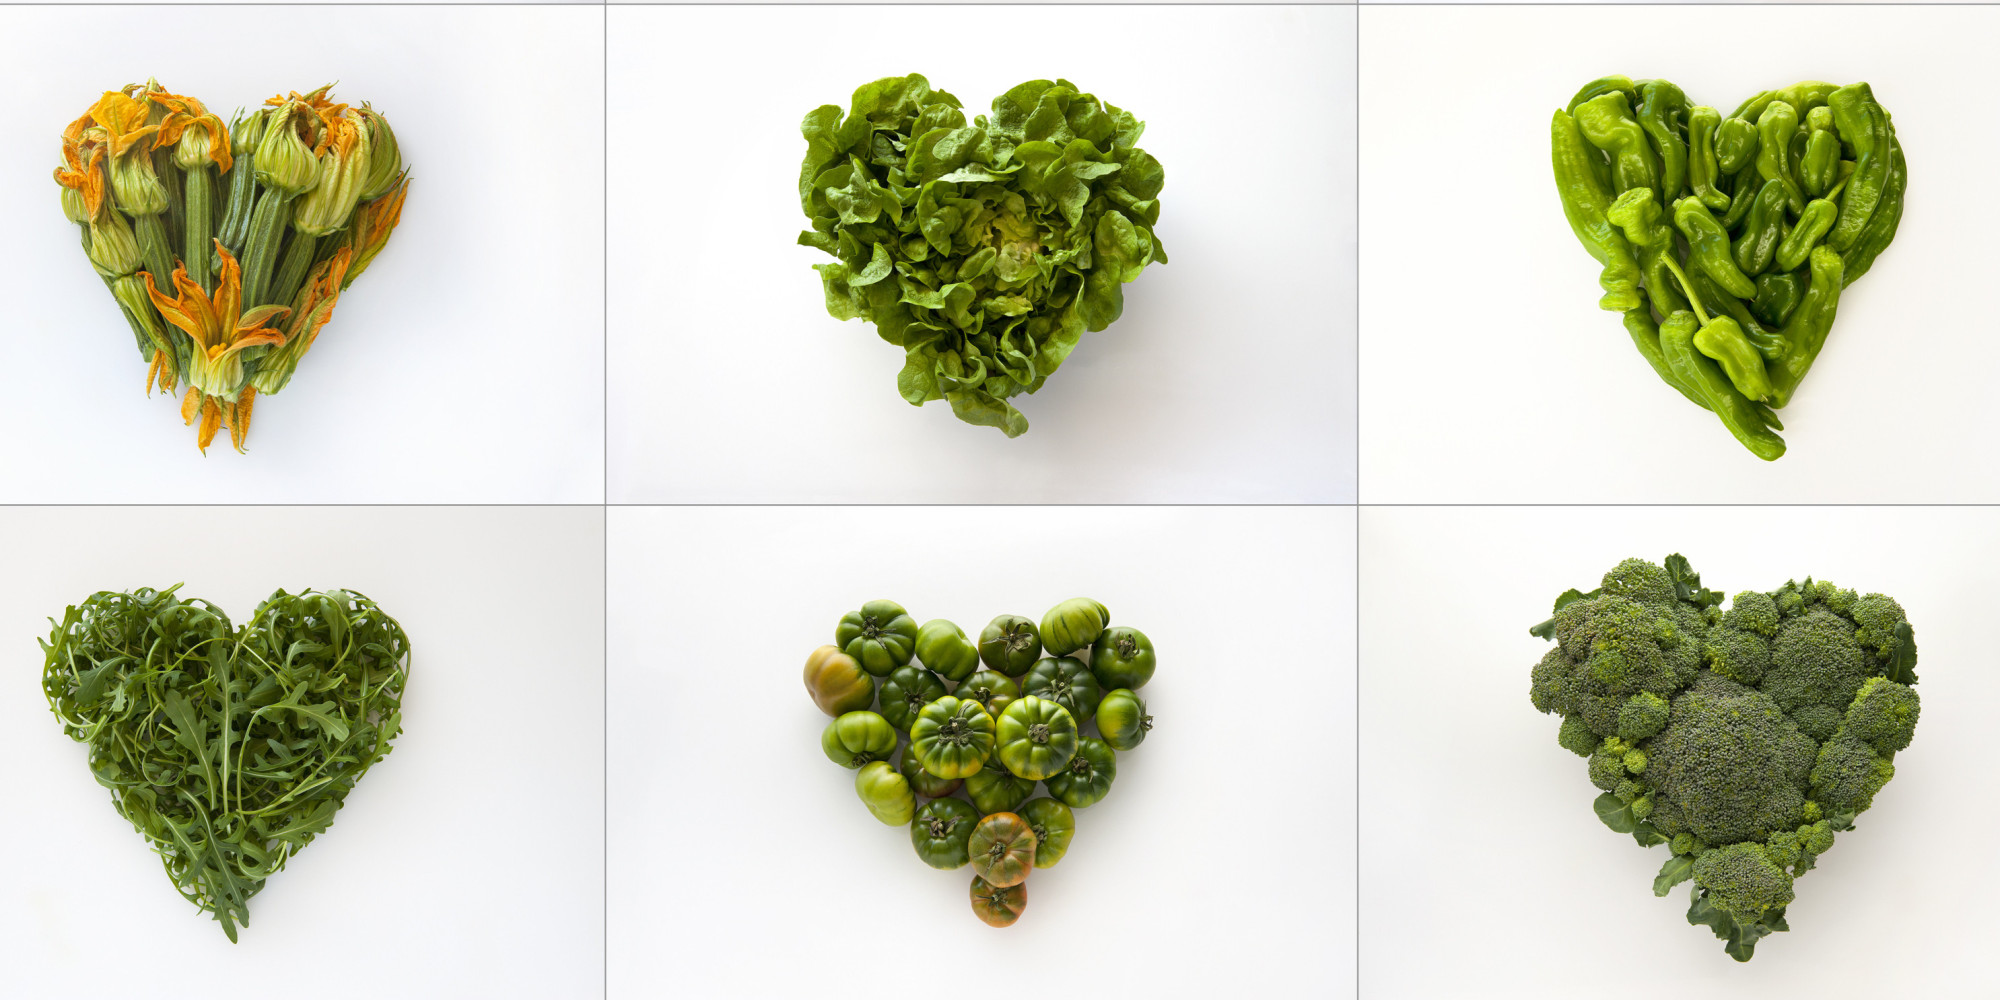 Green Foods May Power Your Cells Like Plants Huffpost